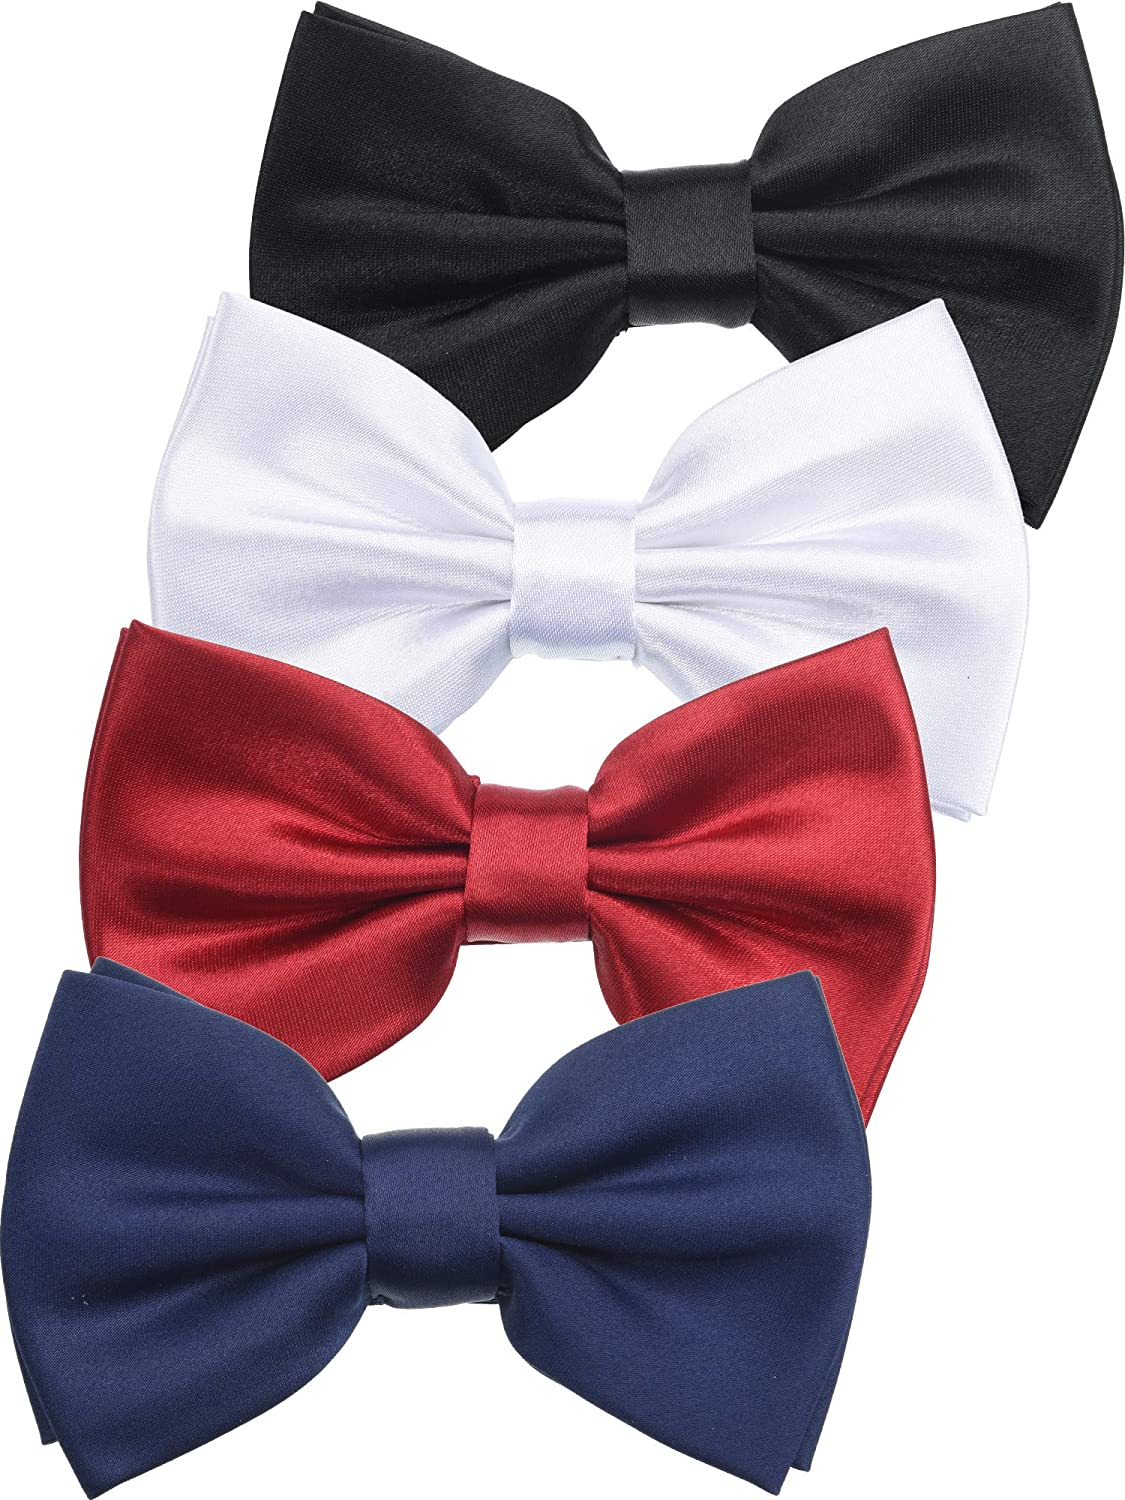 4 Pieces Pre-tied Bow Tie Adjustable Length Bowtie Solid Color Formal Bow Knot for Men